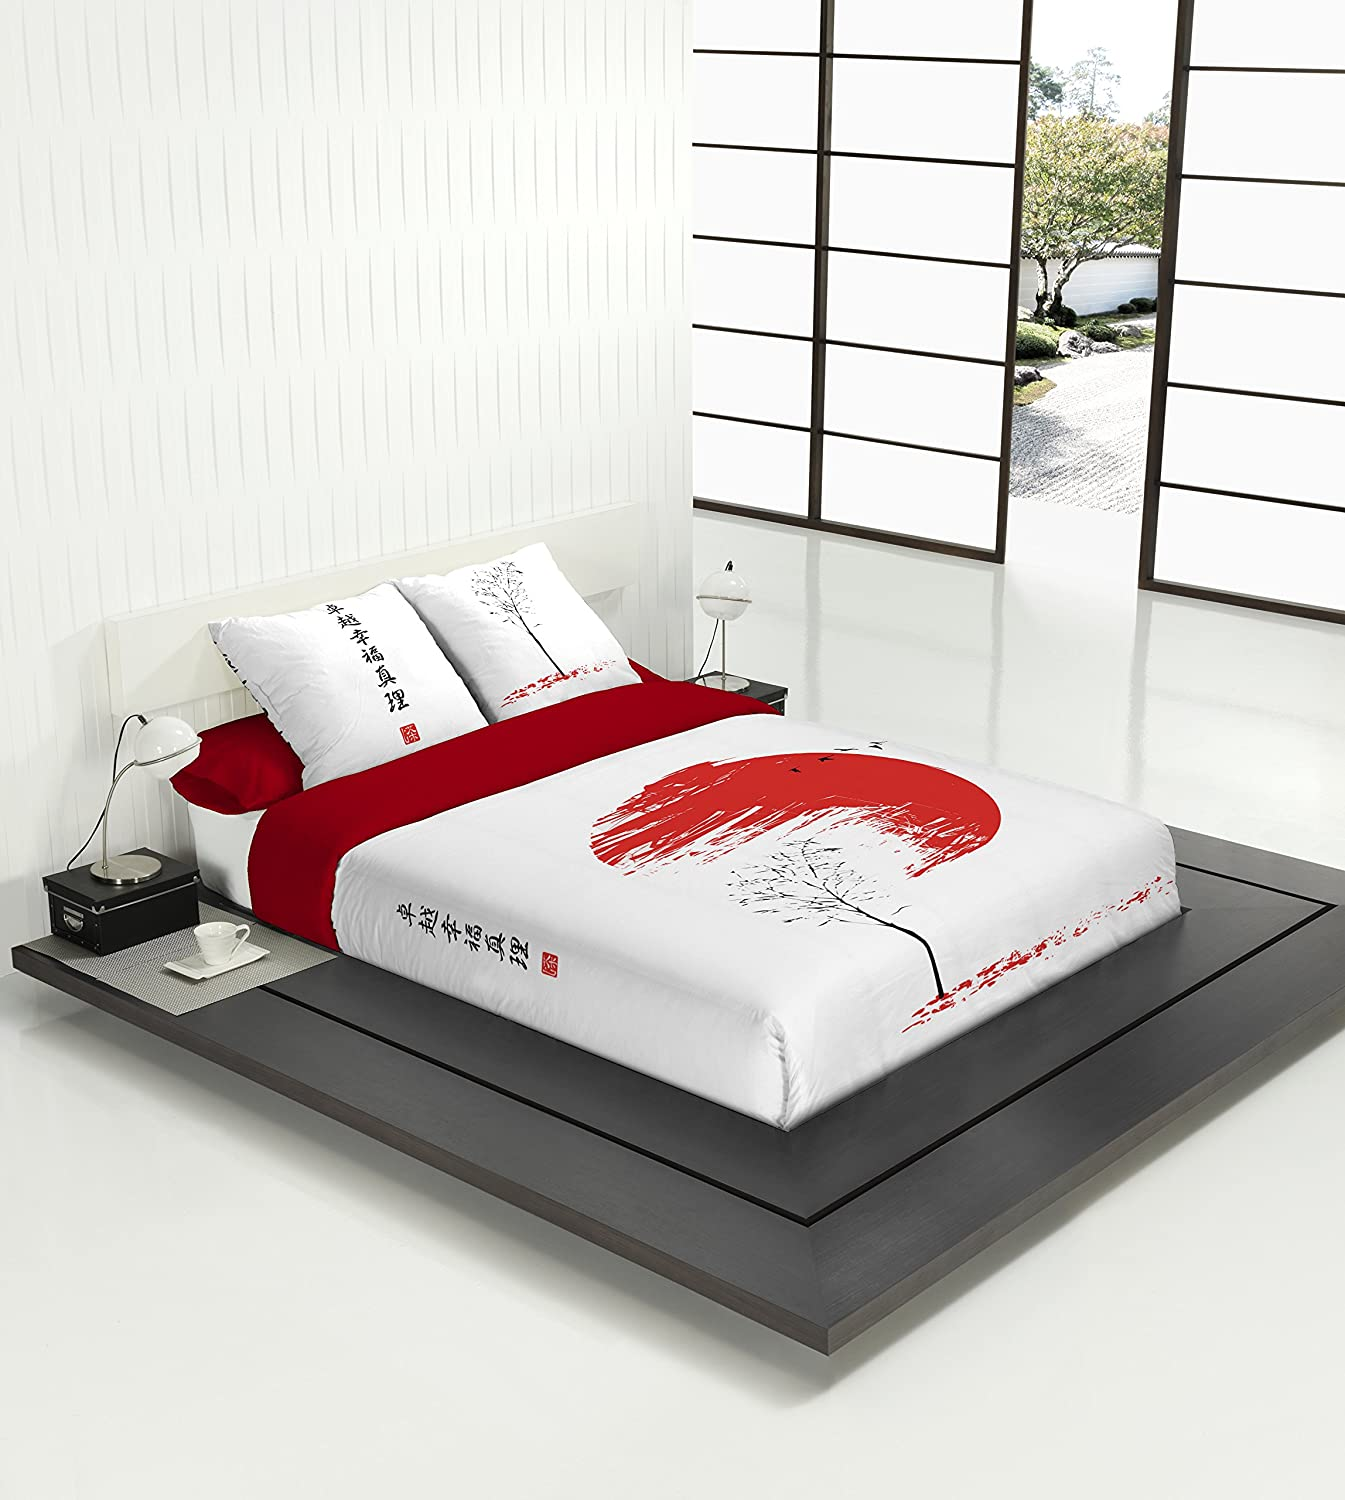 Fundas nordicas 150 affordable relleno edredon nordico for Cama japonesa ikea